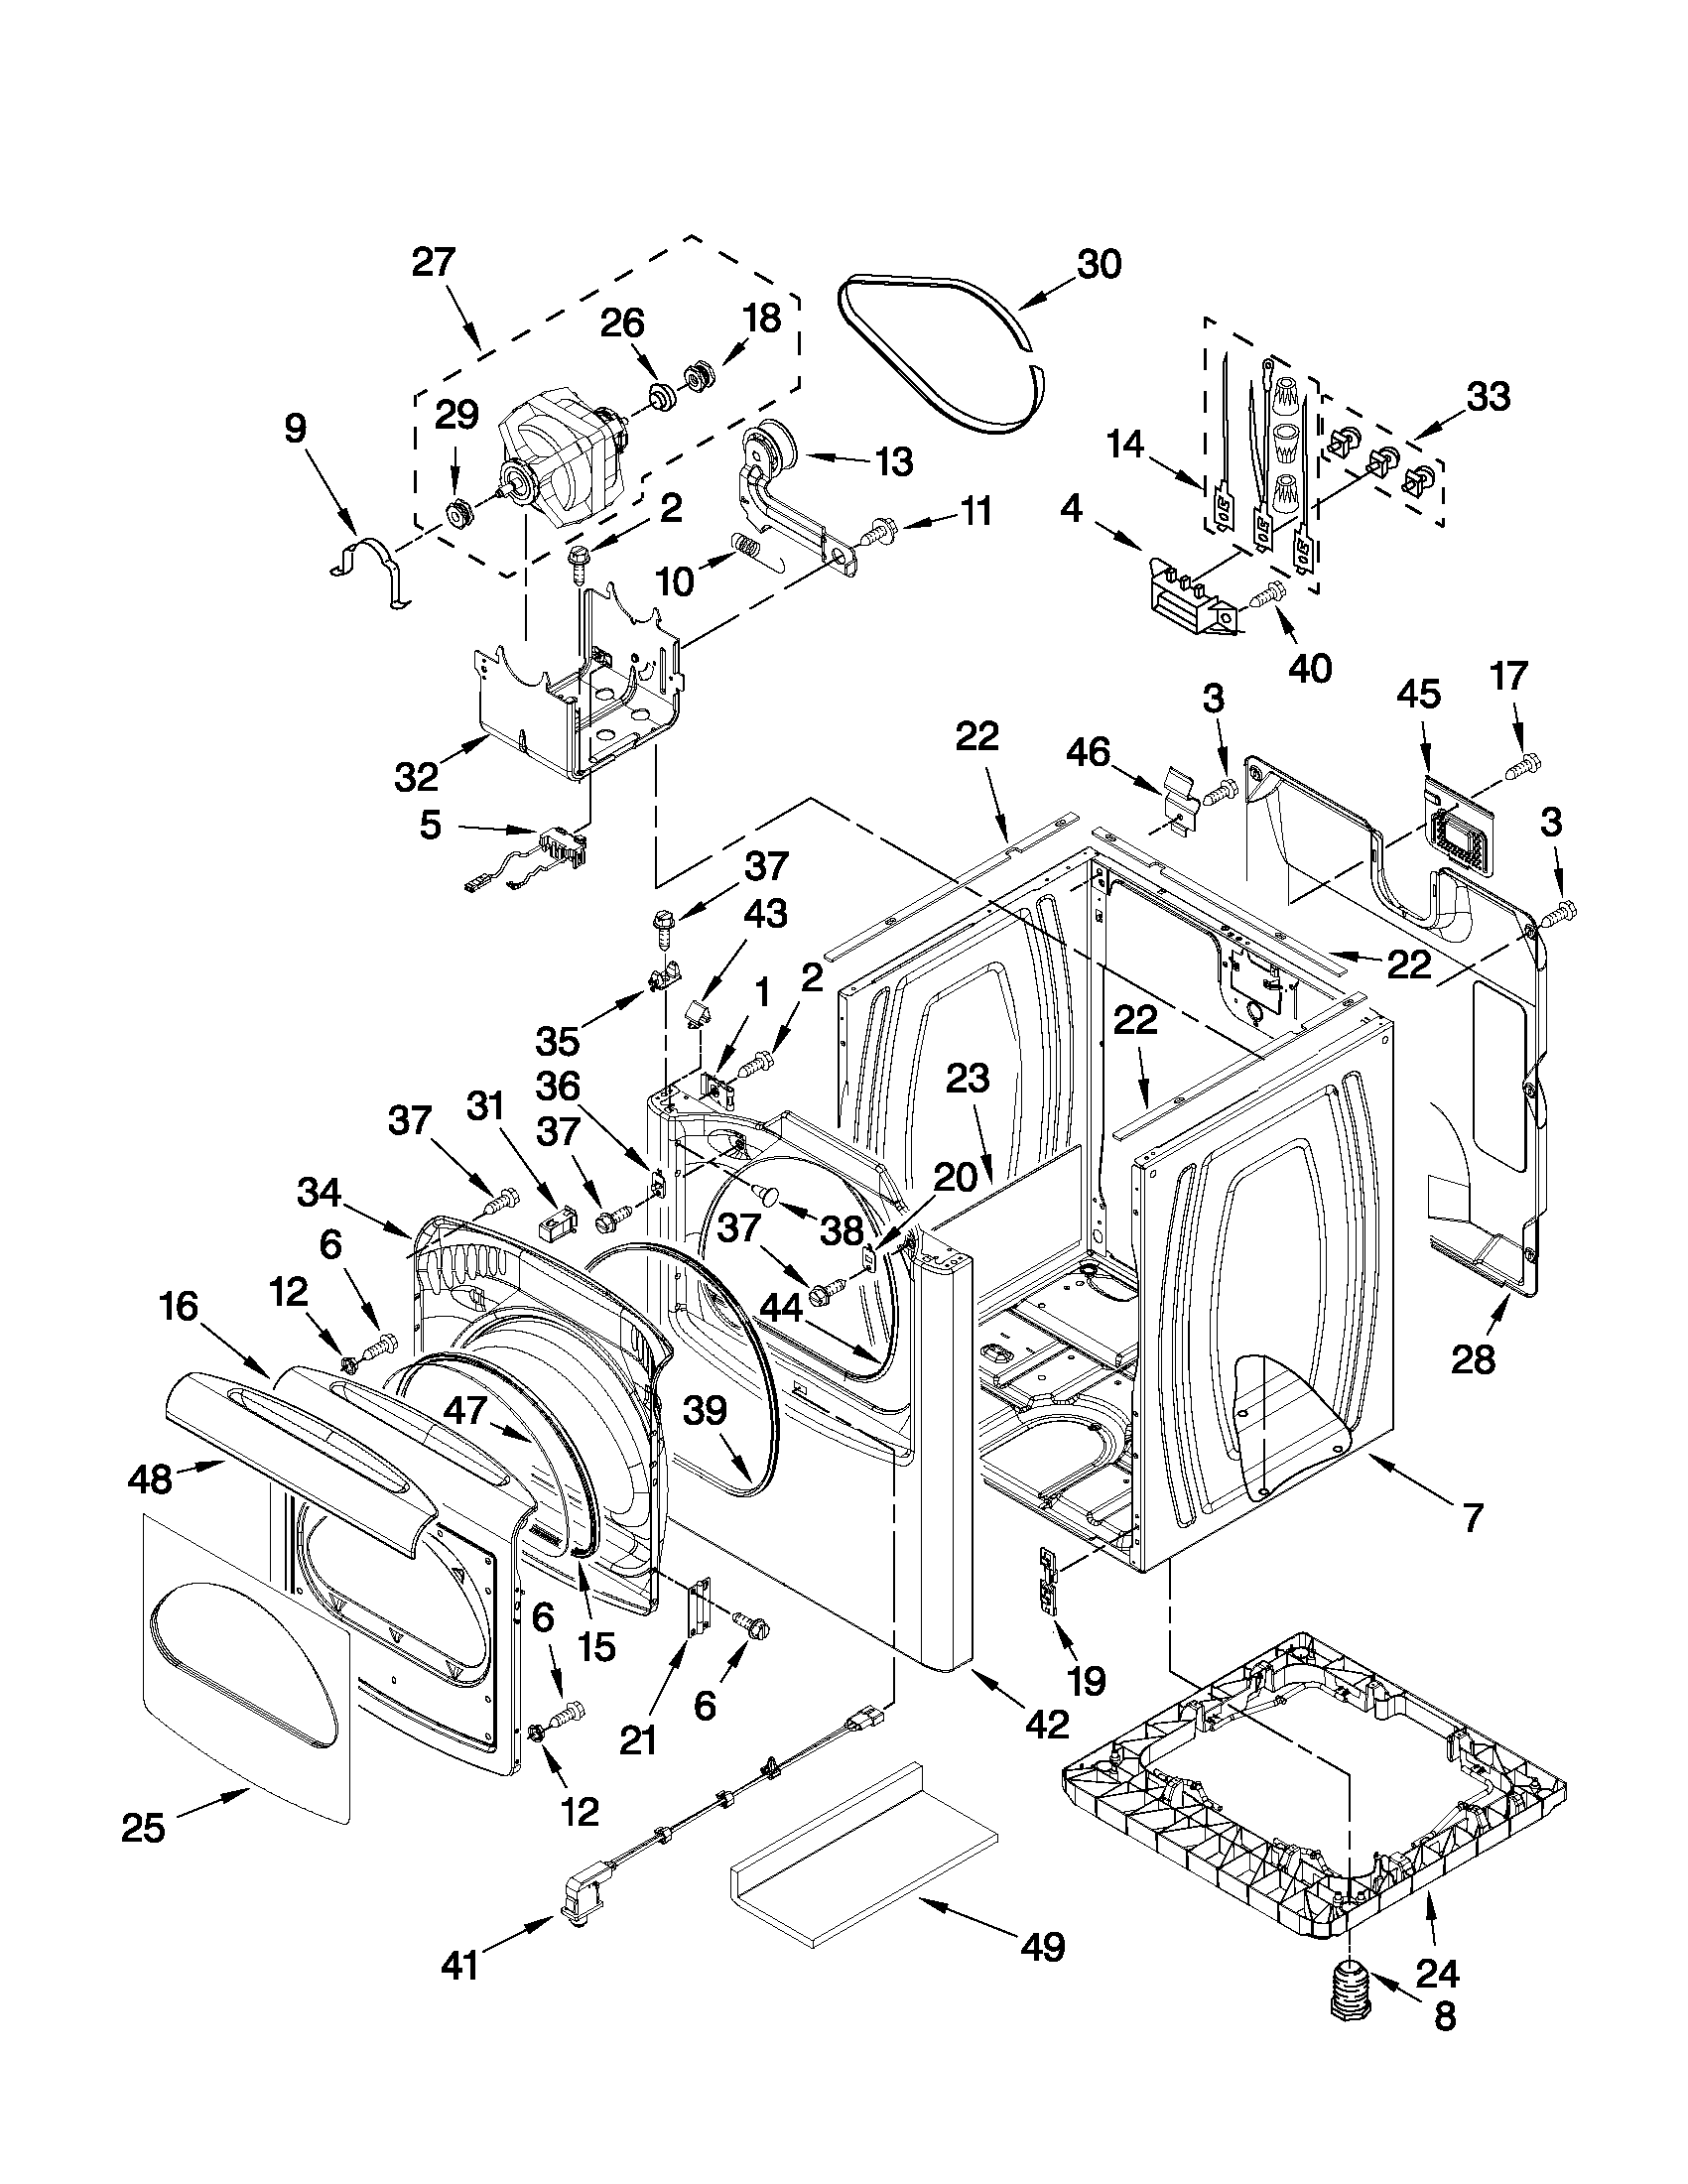 hight resolution of whirlpool model wed8800yc1 residential dryer genuine parts rh searspartsdirect com saturn sl2 cooling system diagram 1997